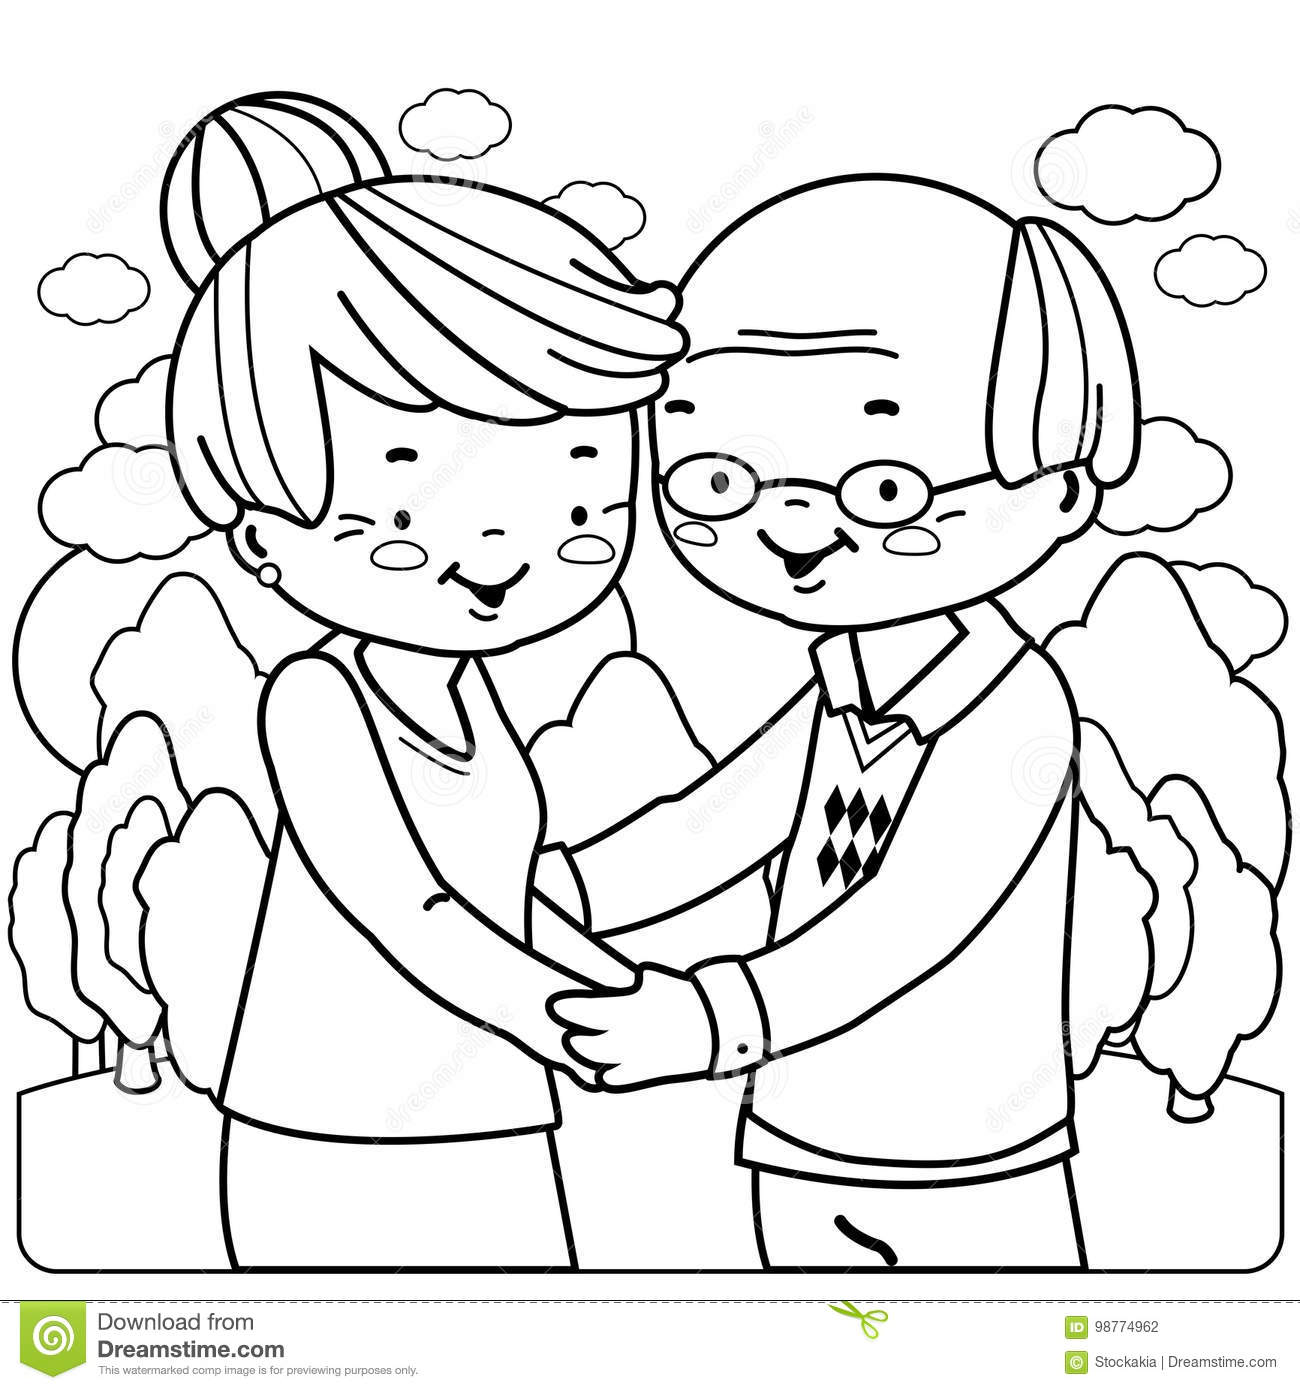 man and woman coloring pages - photo#7